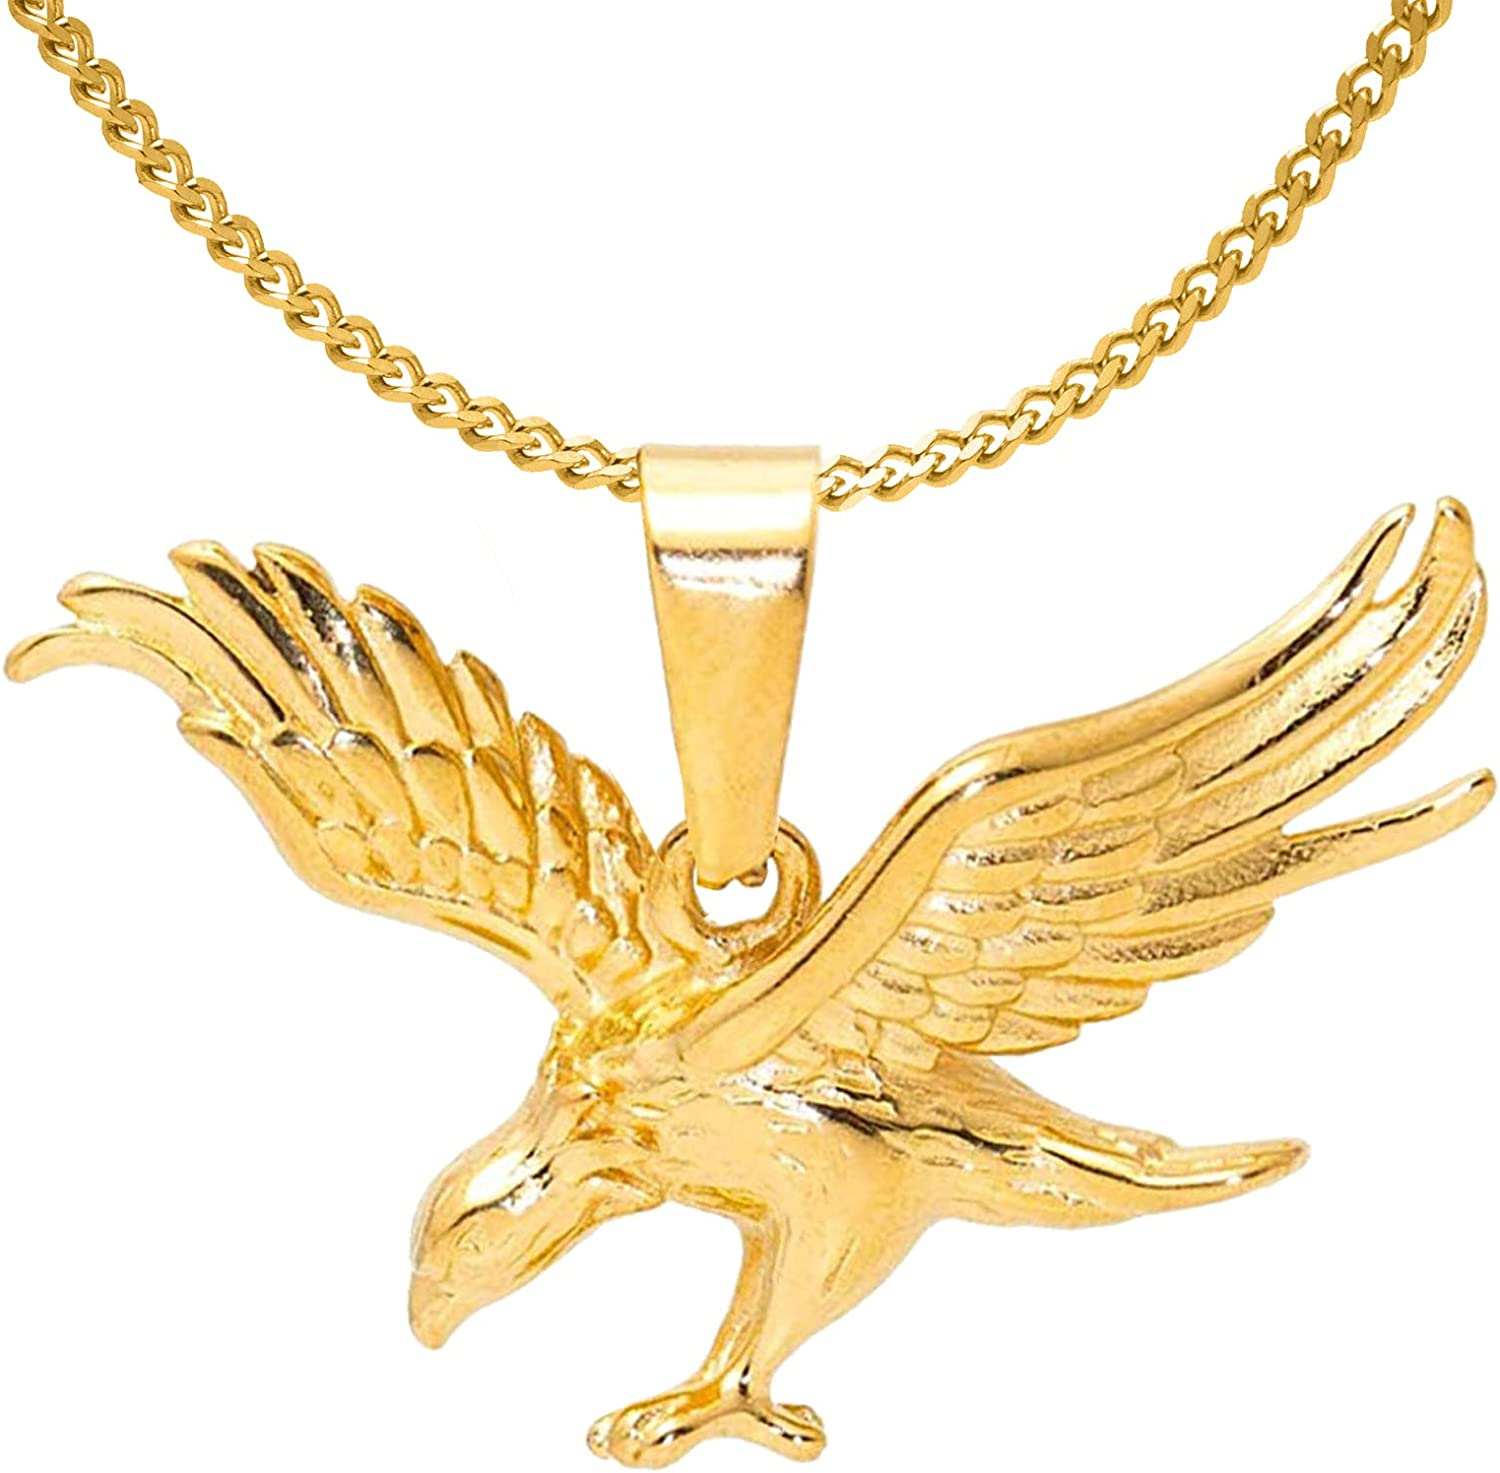 Nsitbbuery Hip Hop 18K Gold Plated Stainless Steel Animal Eagle Pendant Necklace